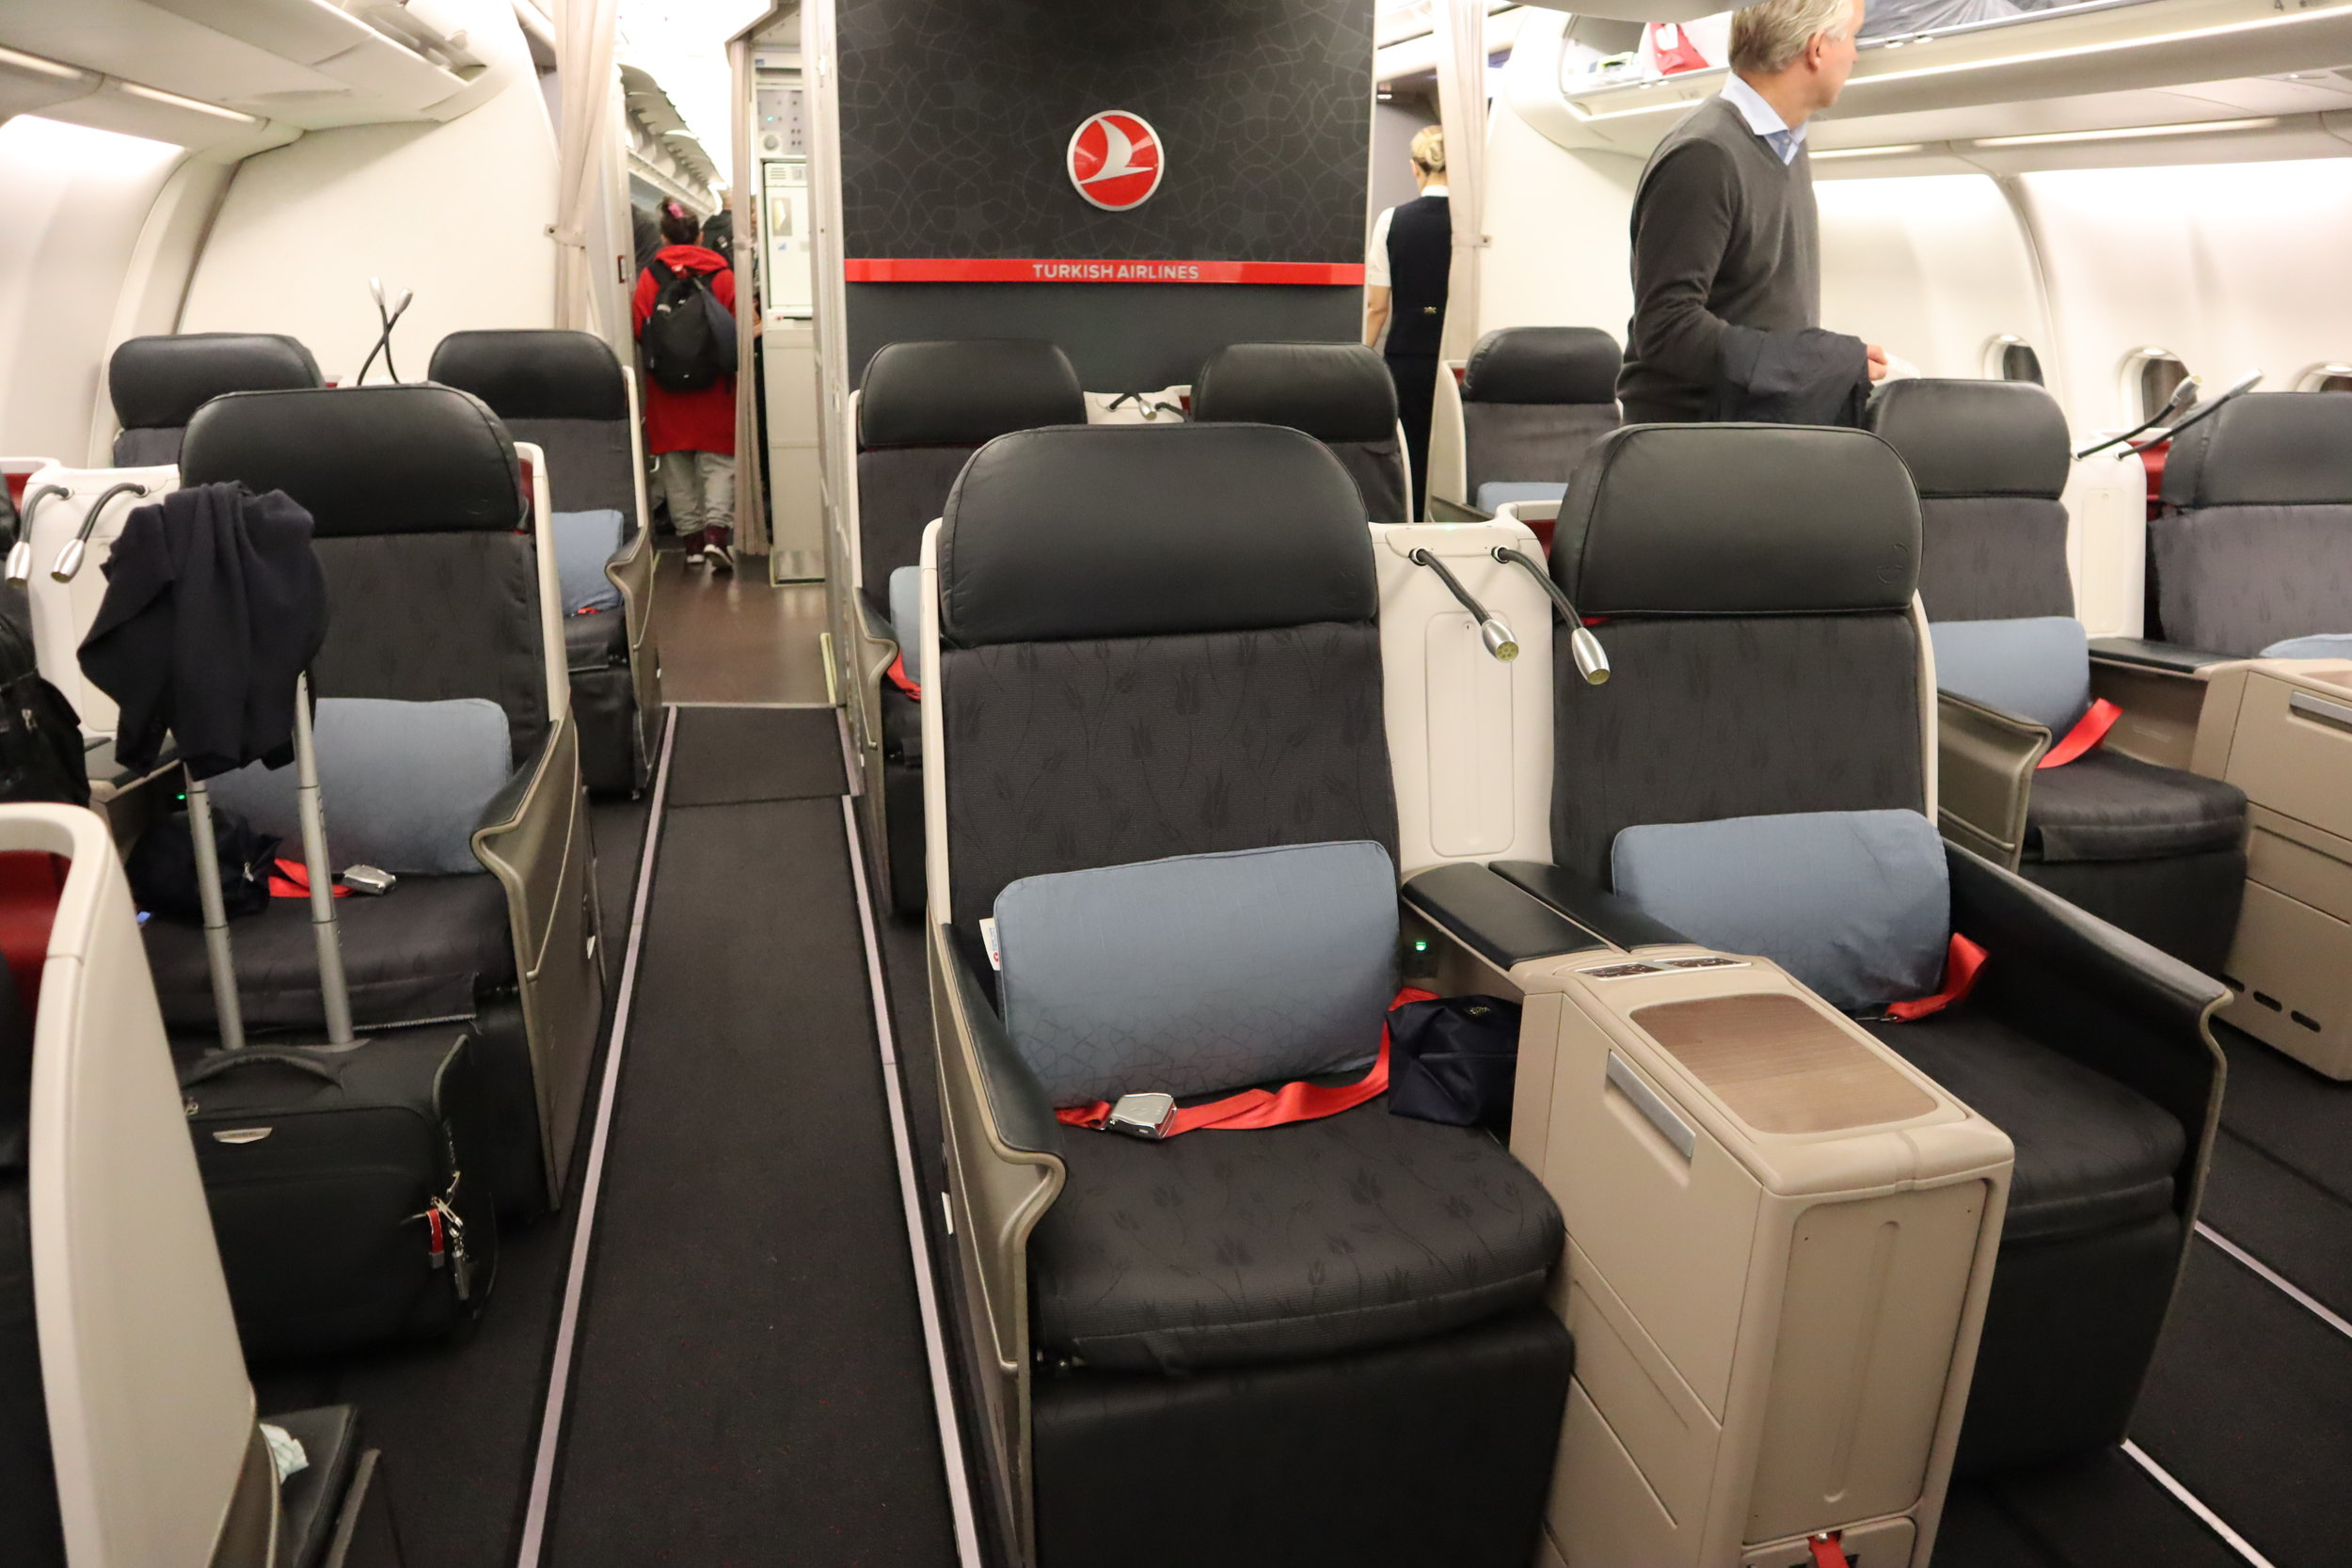 Turkish Airlines A330 business class – Cabin